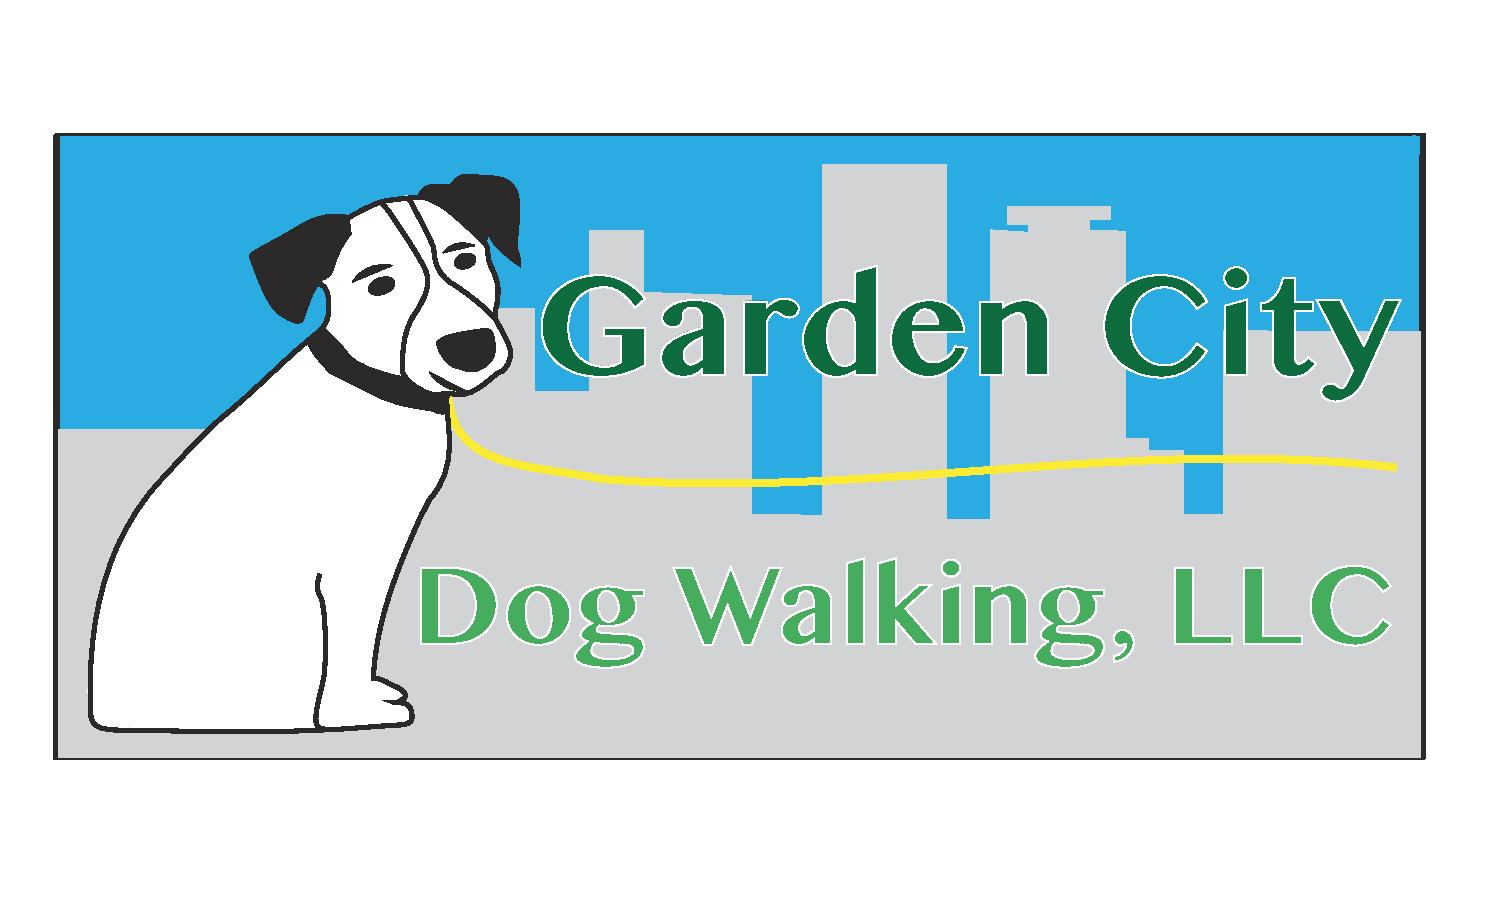 Garden city dog walking llc professional dog walking for Professional dog walking service